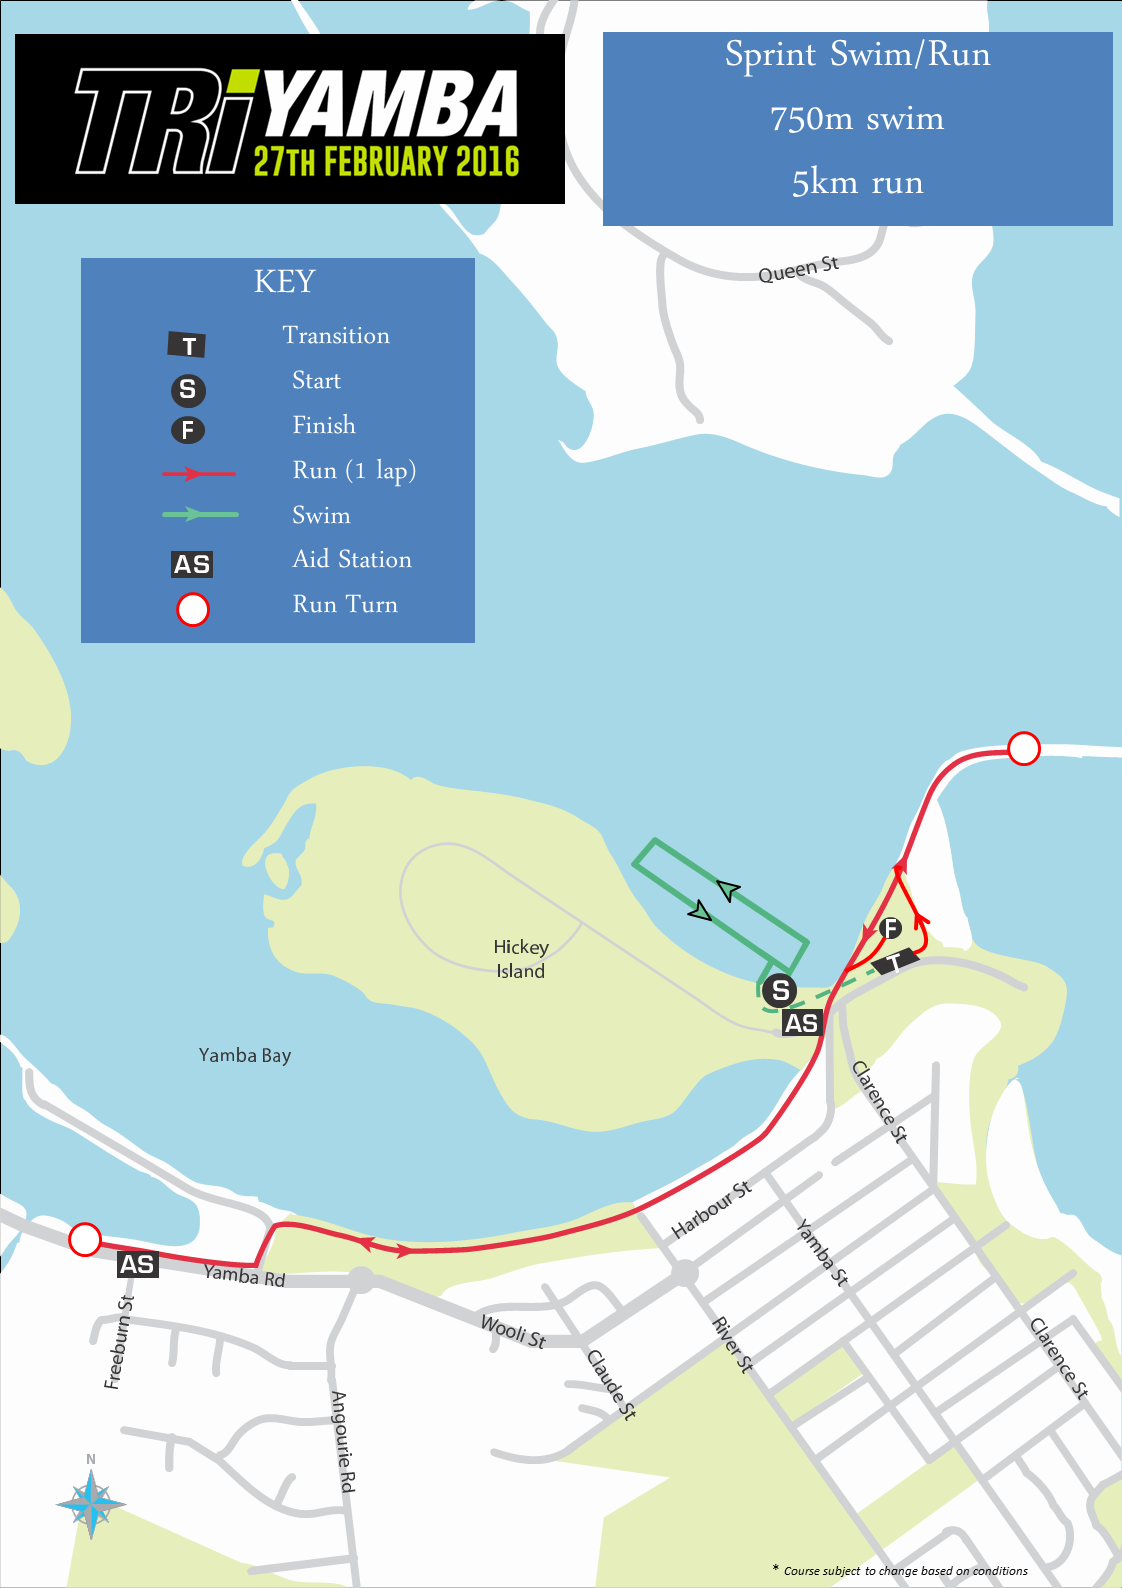 http://www.eliteenergy.com.au/wp-content/uploads/2015/06/Sprint-Run-Swim-Course-Map-2016.png